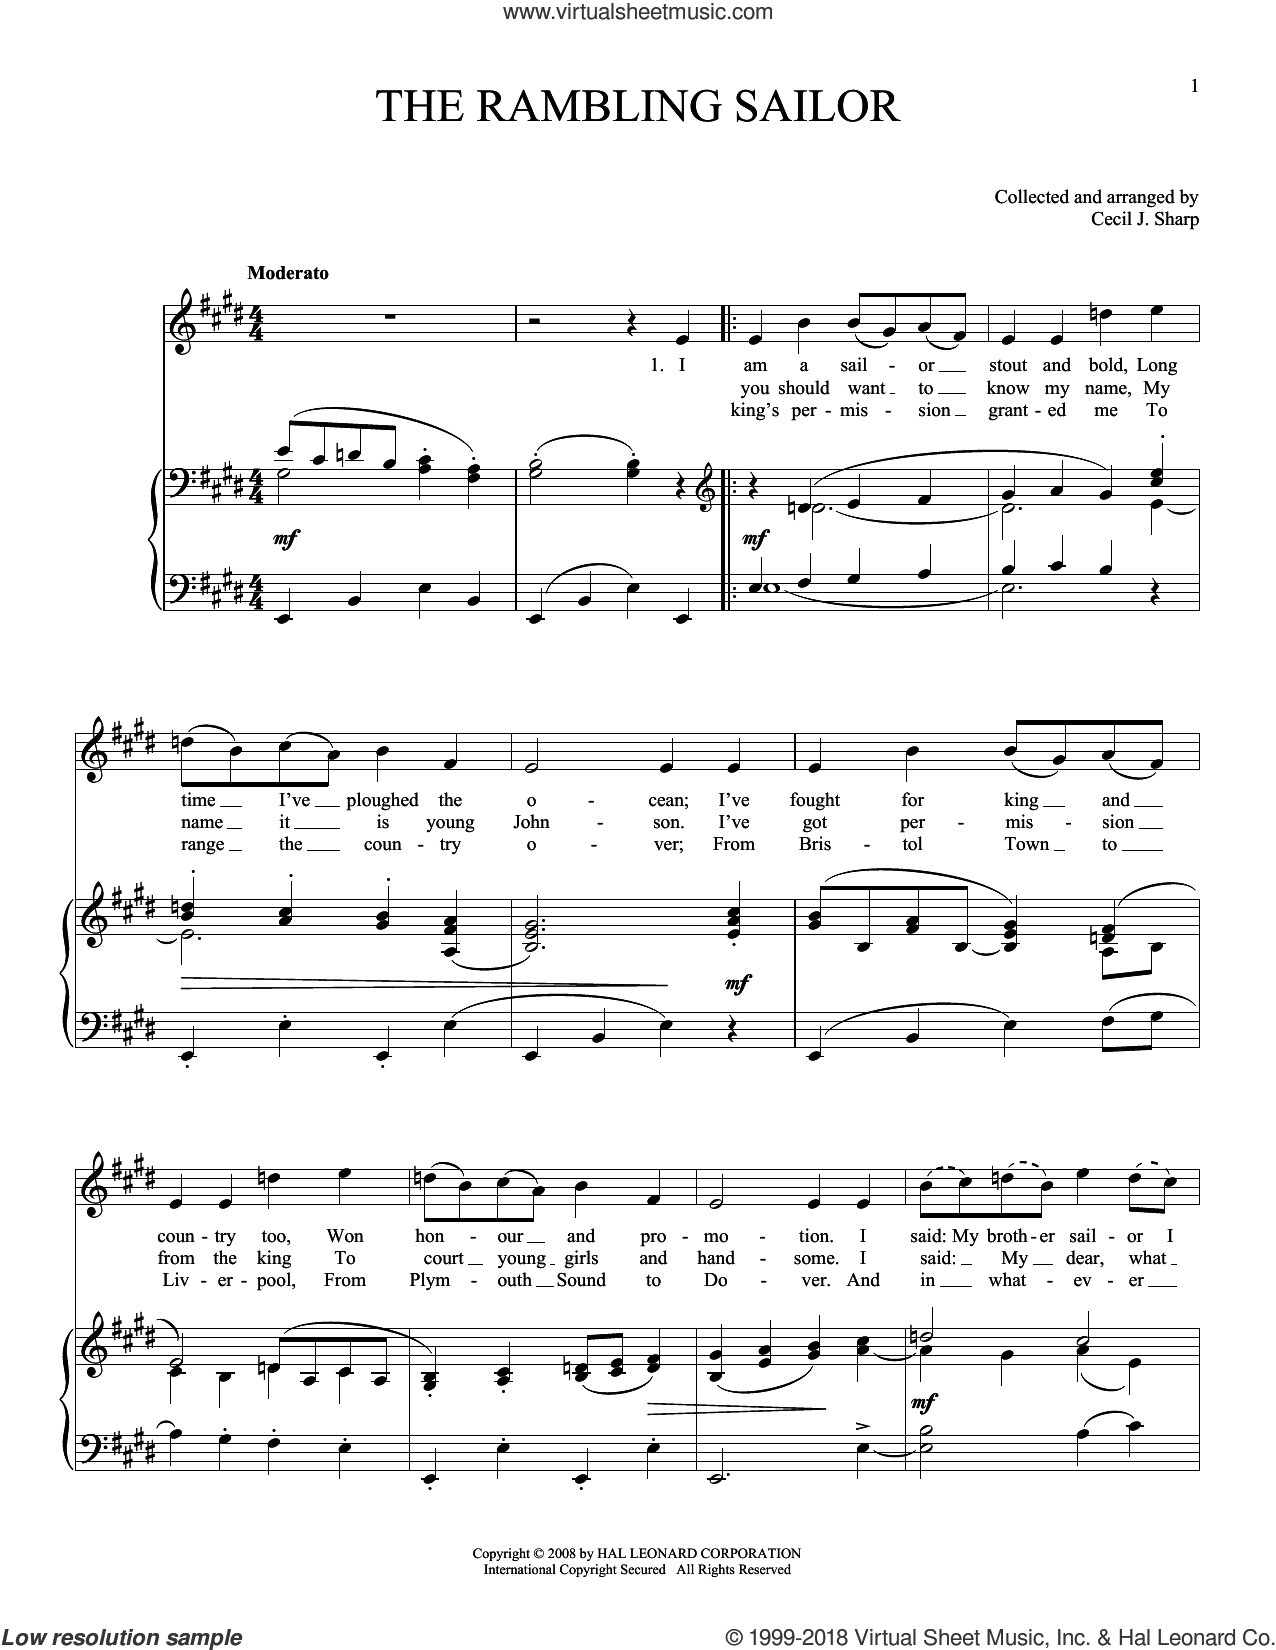 The Rambling Sailor sheet music for voice and piano  and Joan Frey Boytim